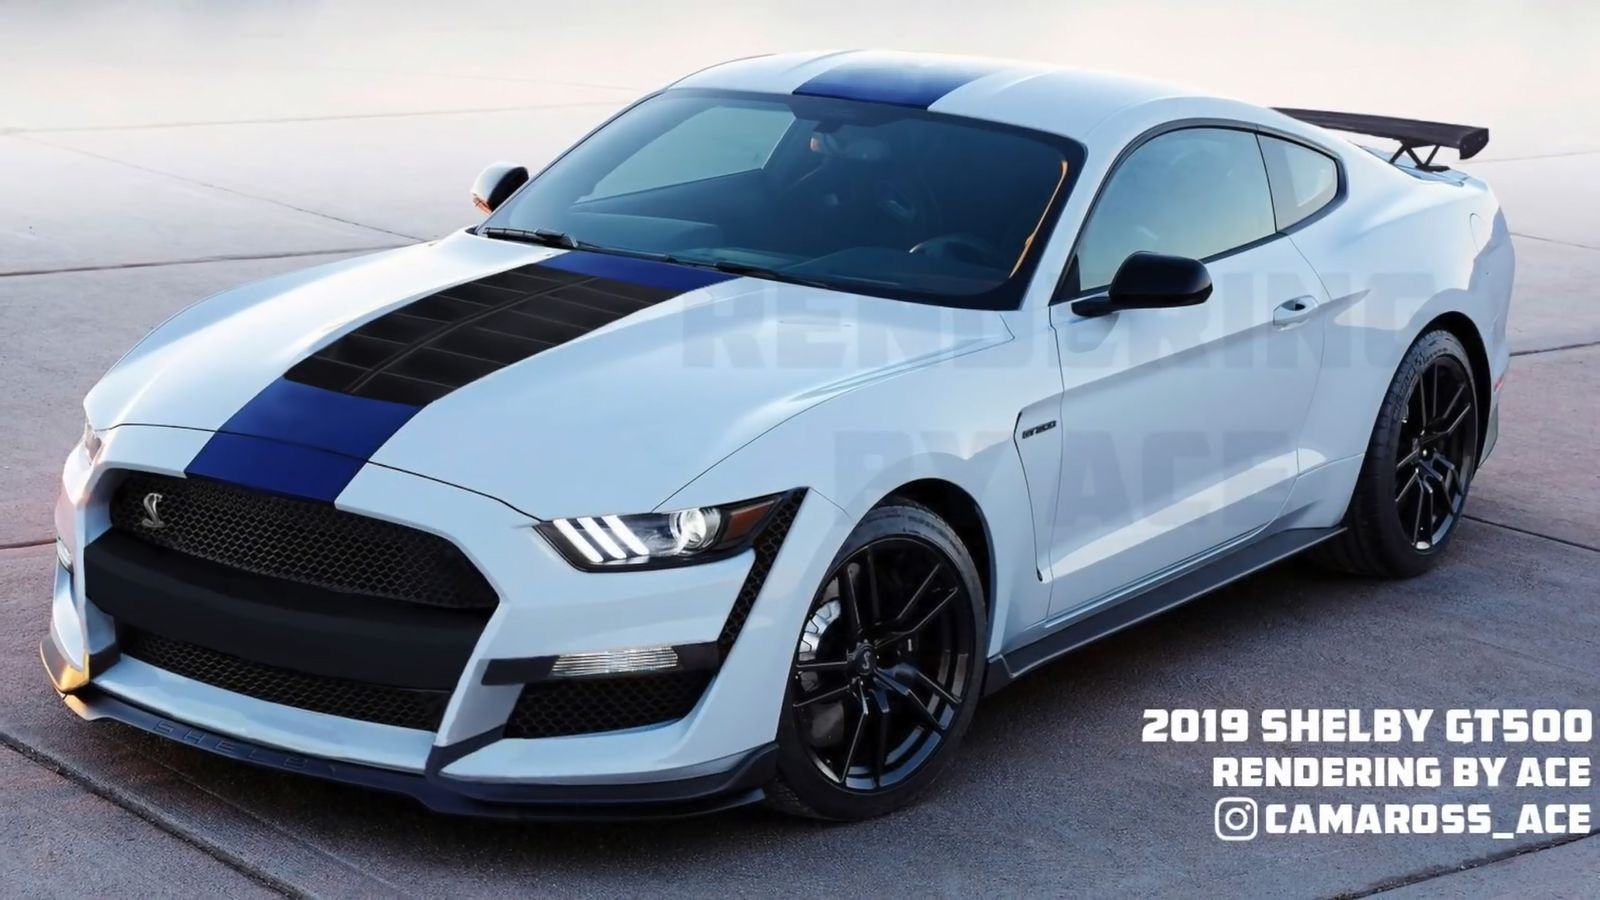 2019 Shelby Gt500 What We Know So Far Shelby Gt500 Ford